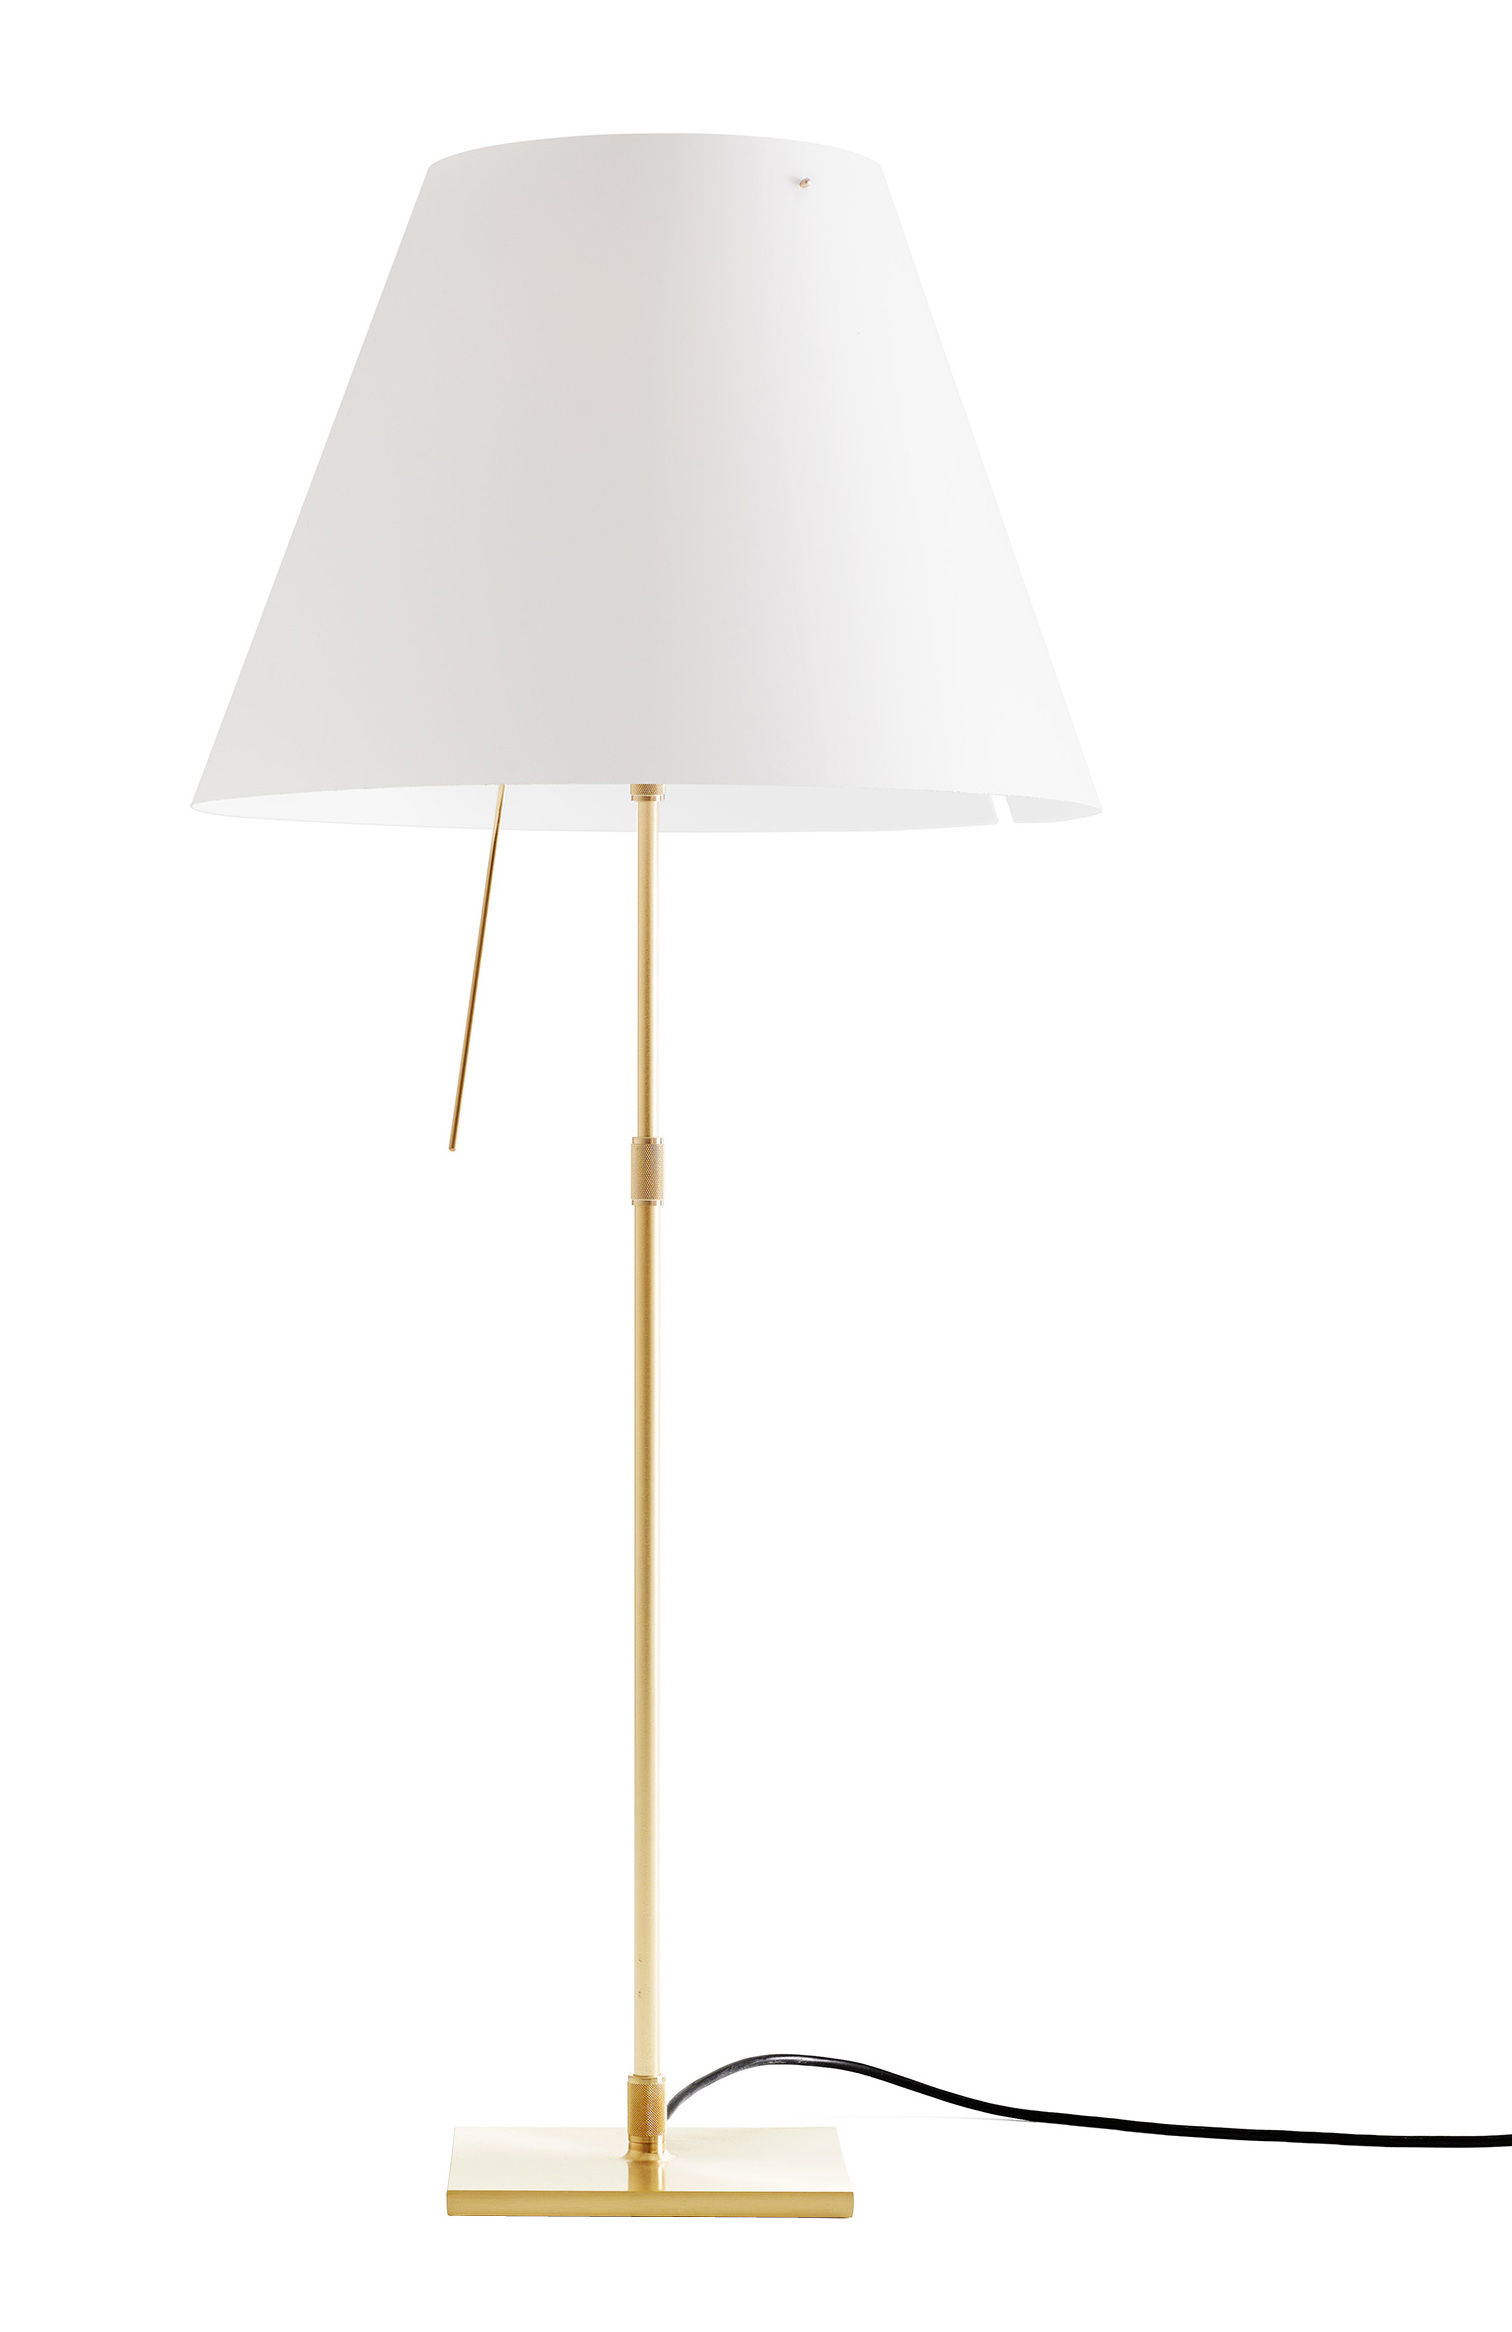 Lighting - Table Lamps - Costanza Table lamp - / H 76 to 110 cm by Luceplan - White /Brass base - Painted aluminium, Polycarbonate